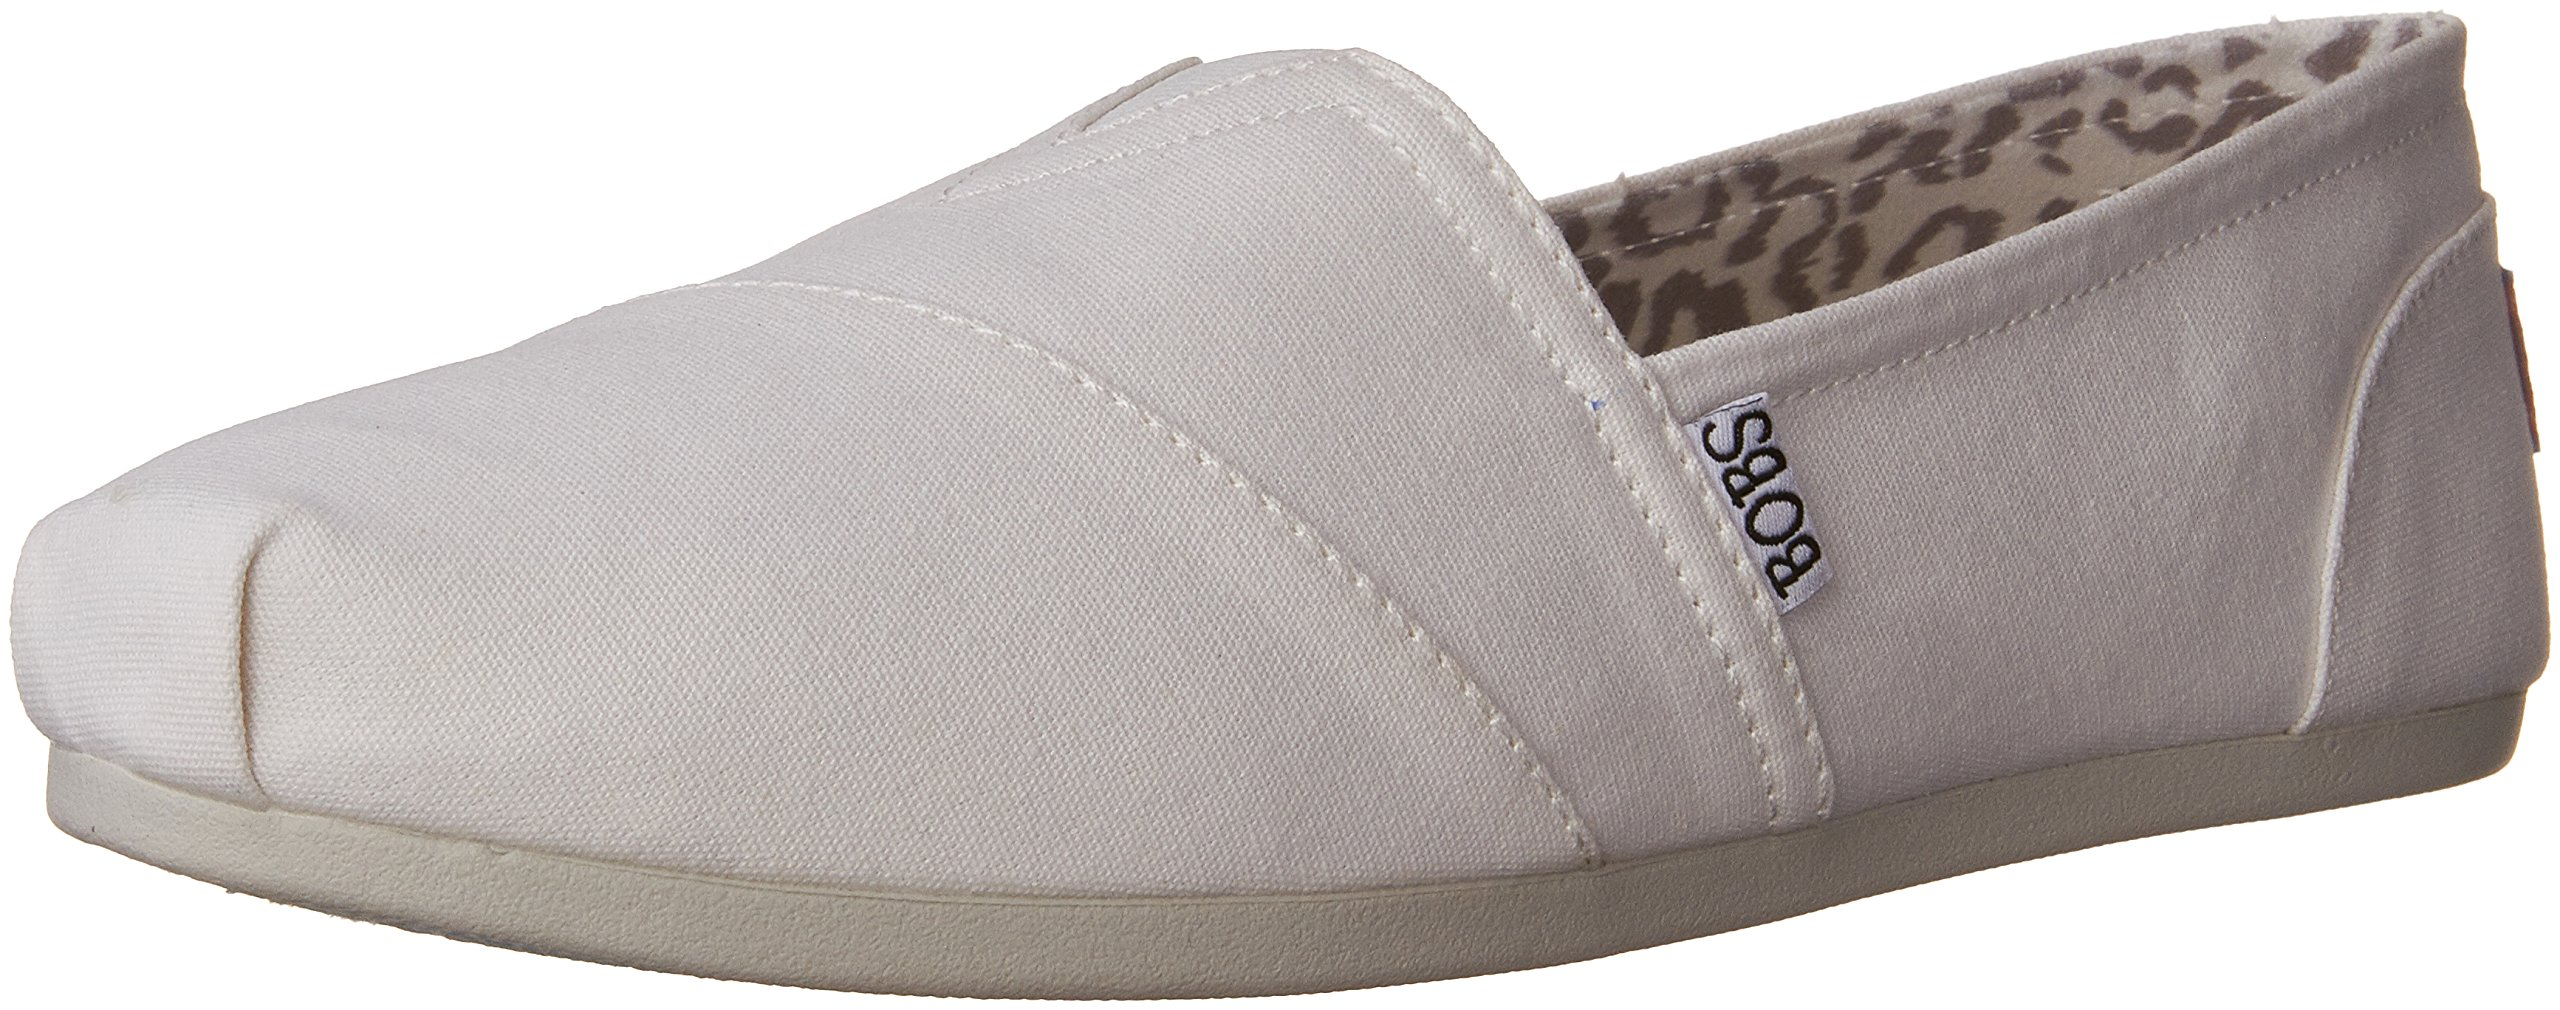 BOBS from Skechers Women's Plush Peace and Love Flat,White,7.5 M US by Skechers